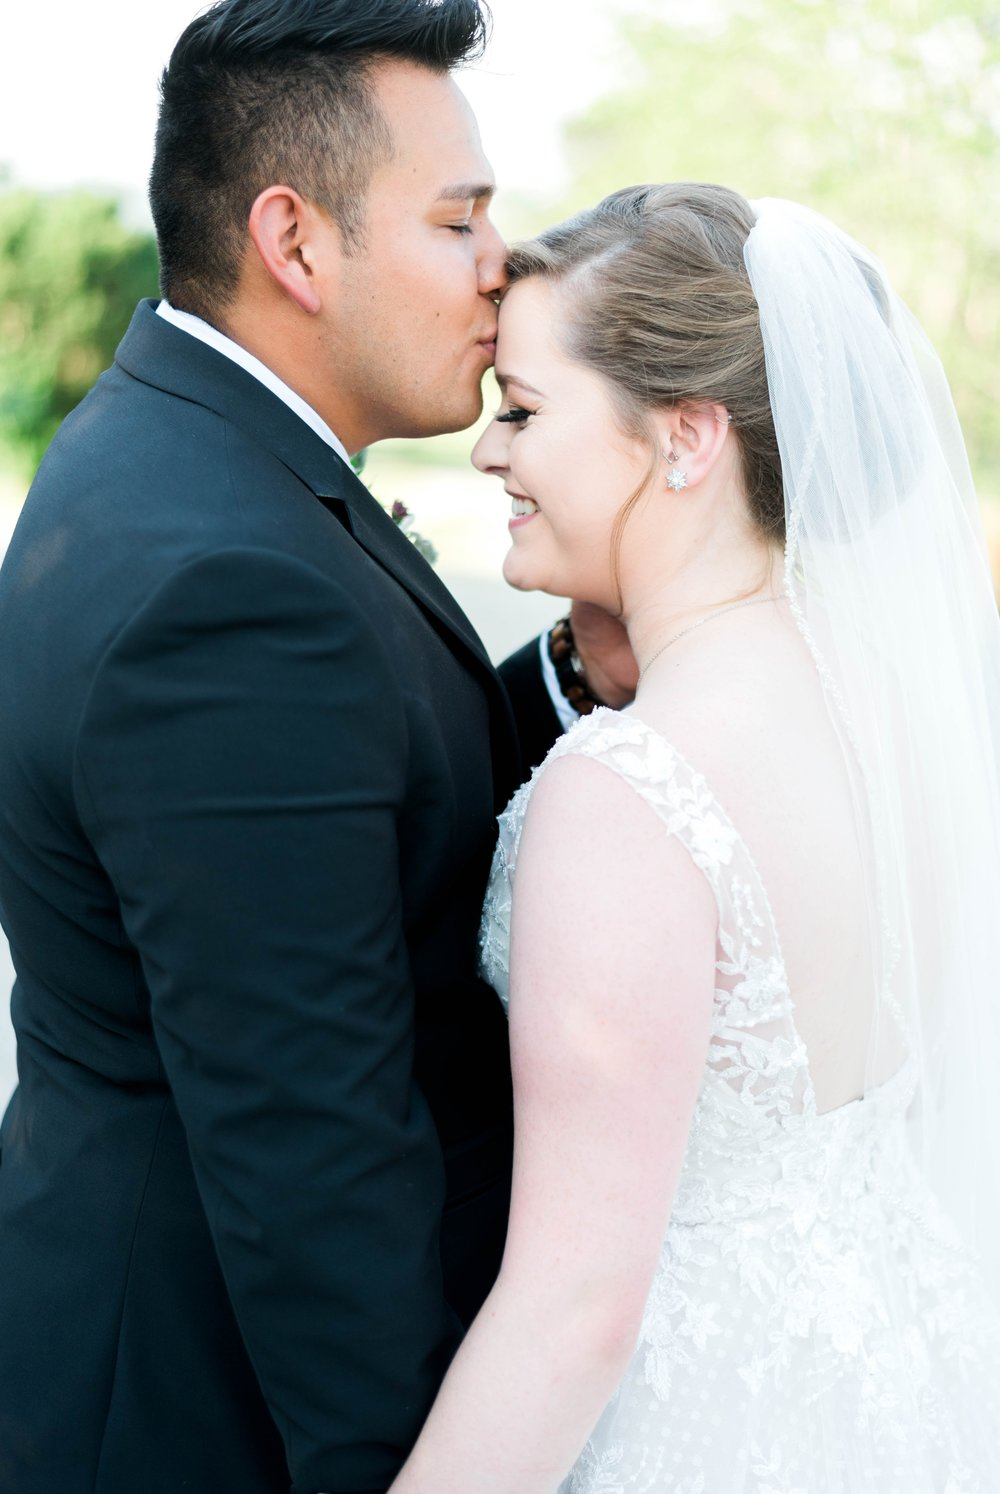 Jillian+Abi_OakridgeEstate_Wedding_VirginiaWeddingPhotographer_SpringWedding 21.jpg